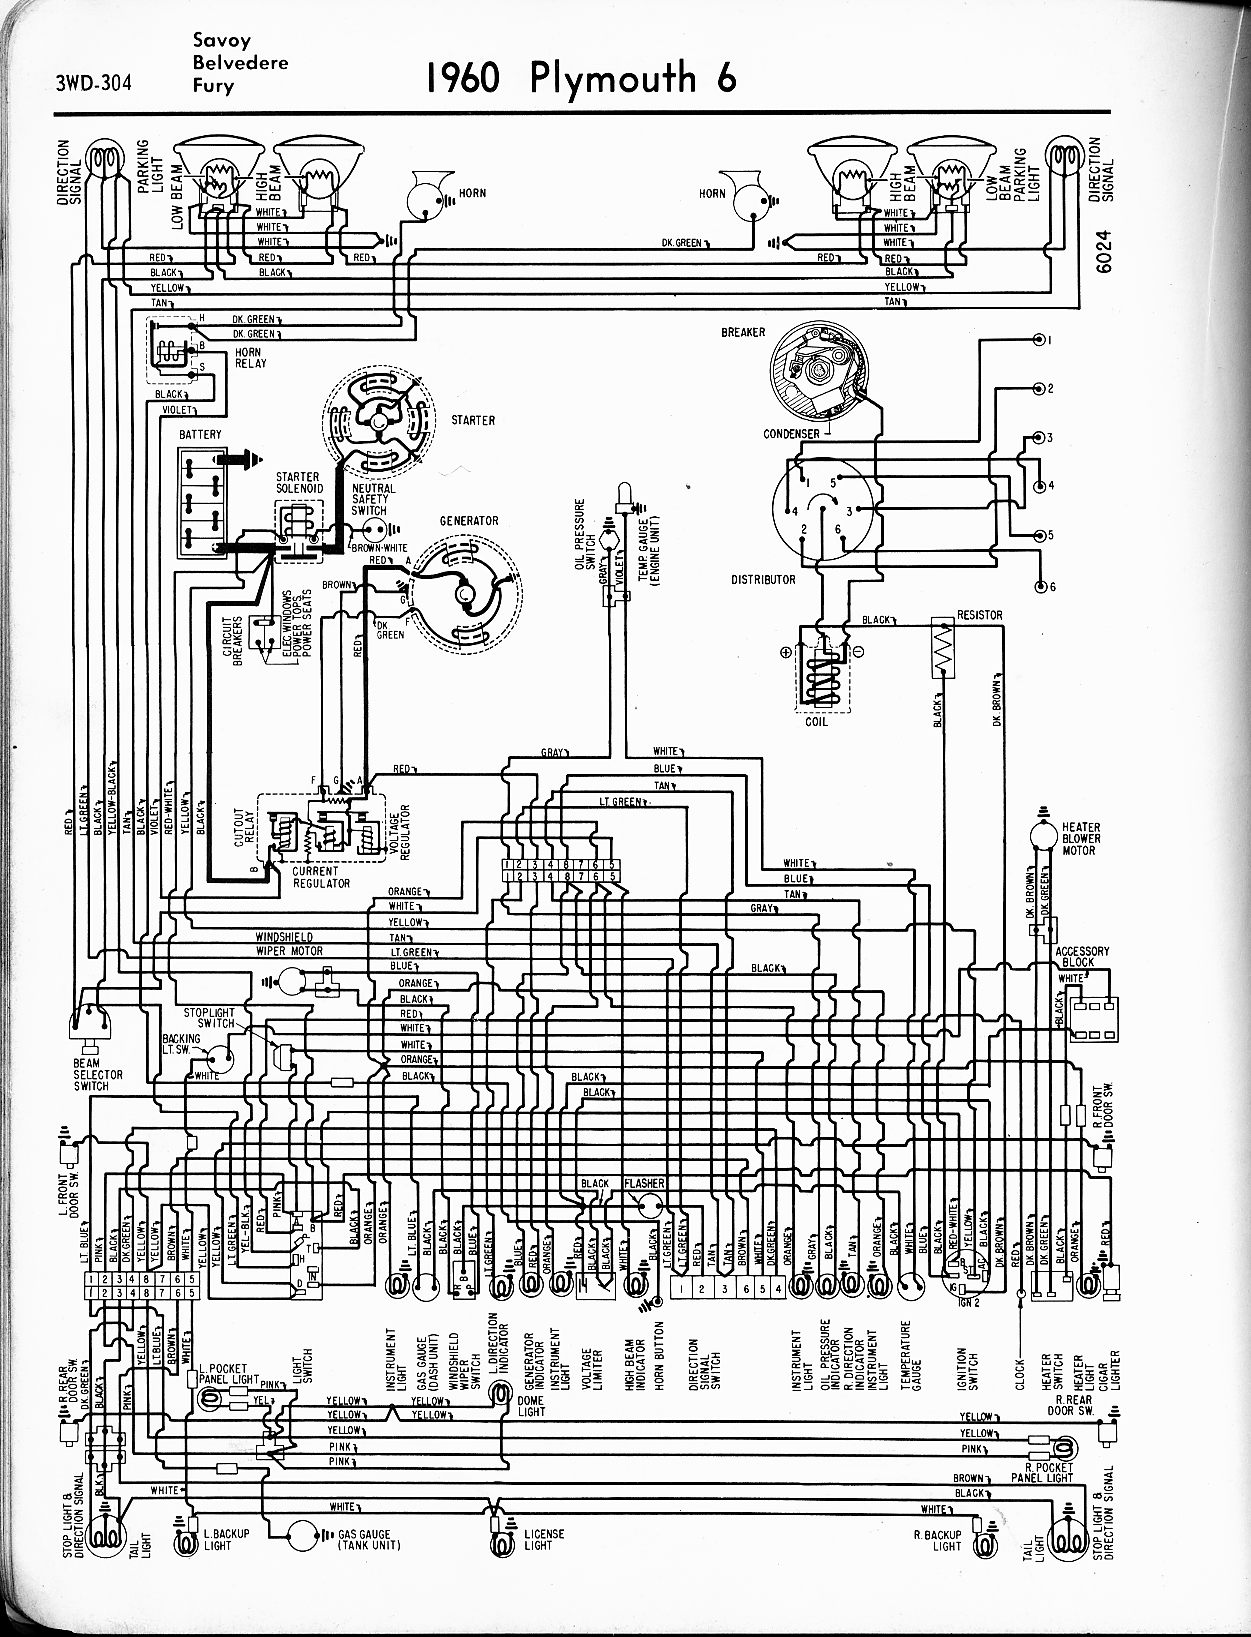 1960 plymouth fury wiring diagram auto electrical wiring diagram u2022 rh 6weeks co uk